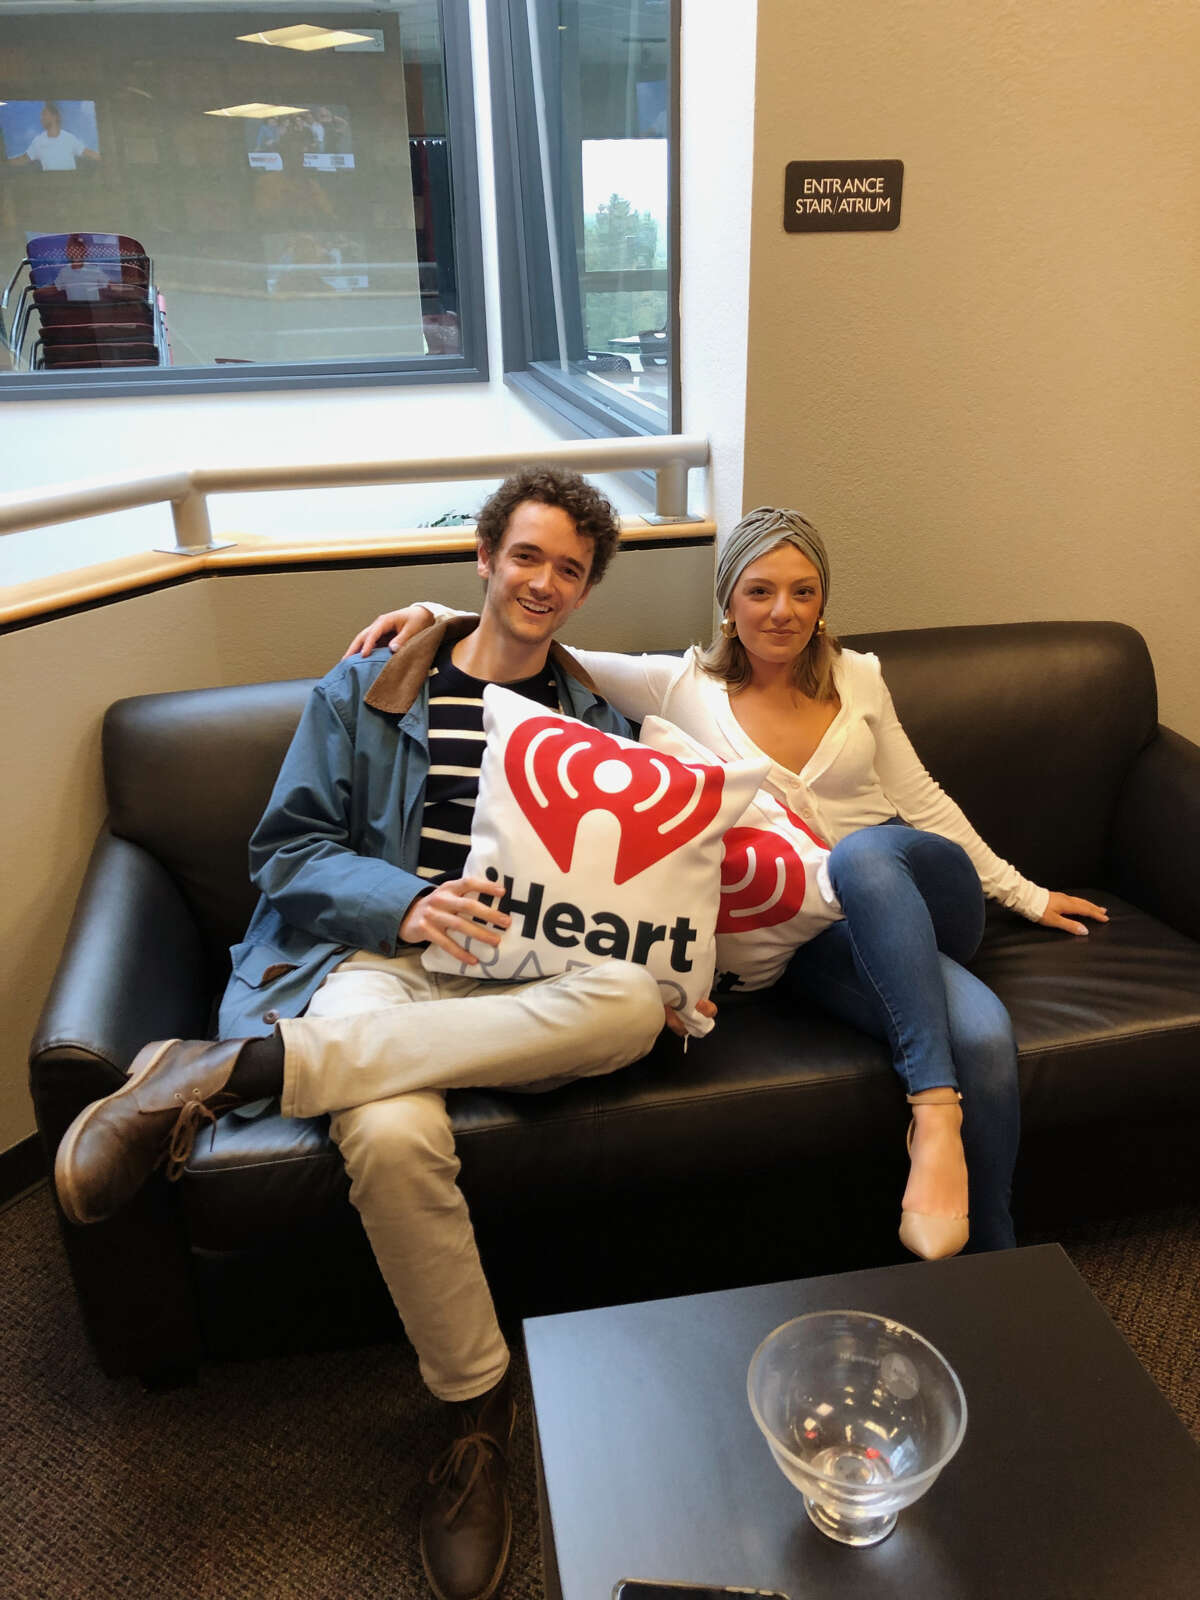 Taylor Rao and Jack Carpenter of Two Buttons Deep inside the iHeartMedia building in Latham. They will be on the KISS 102-3 Low Budget Night Show with D Scott from 6 to 8 p.m. each Friday.